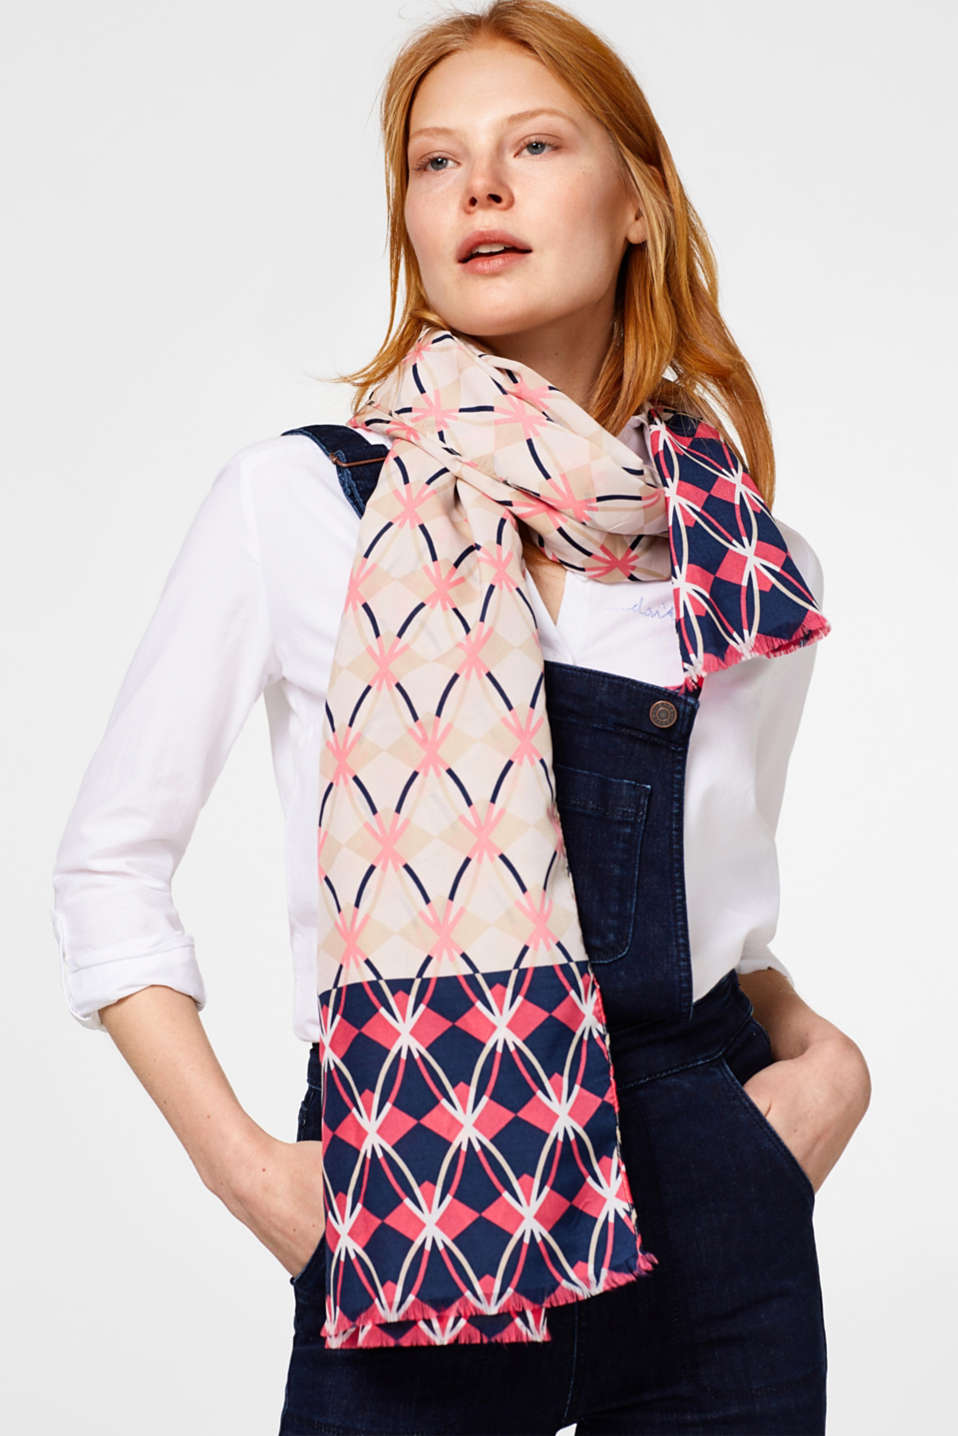 Flowing scarf with a distinctive pattern